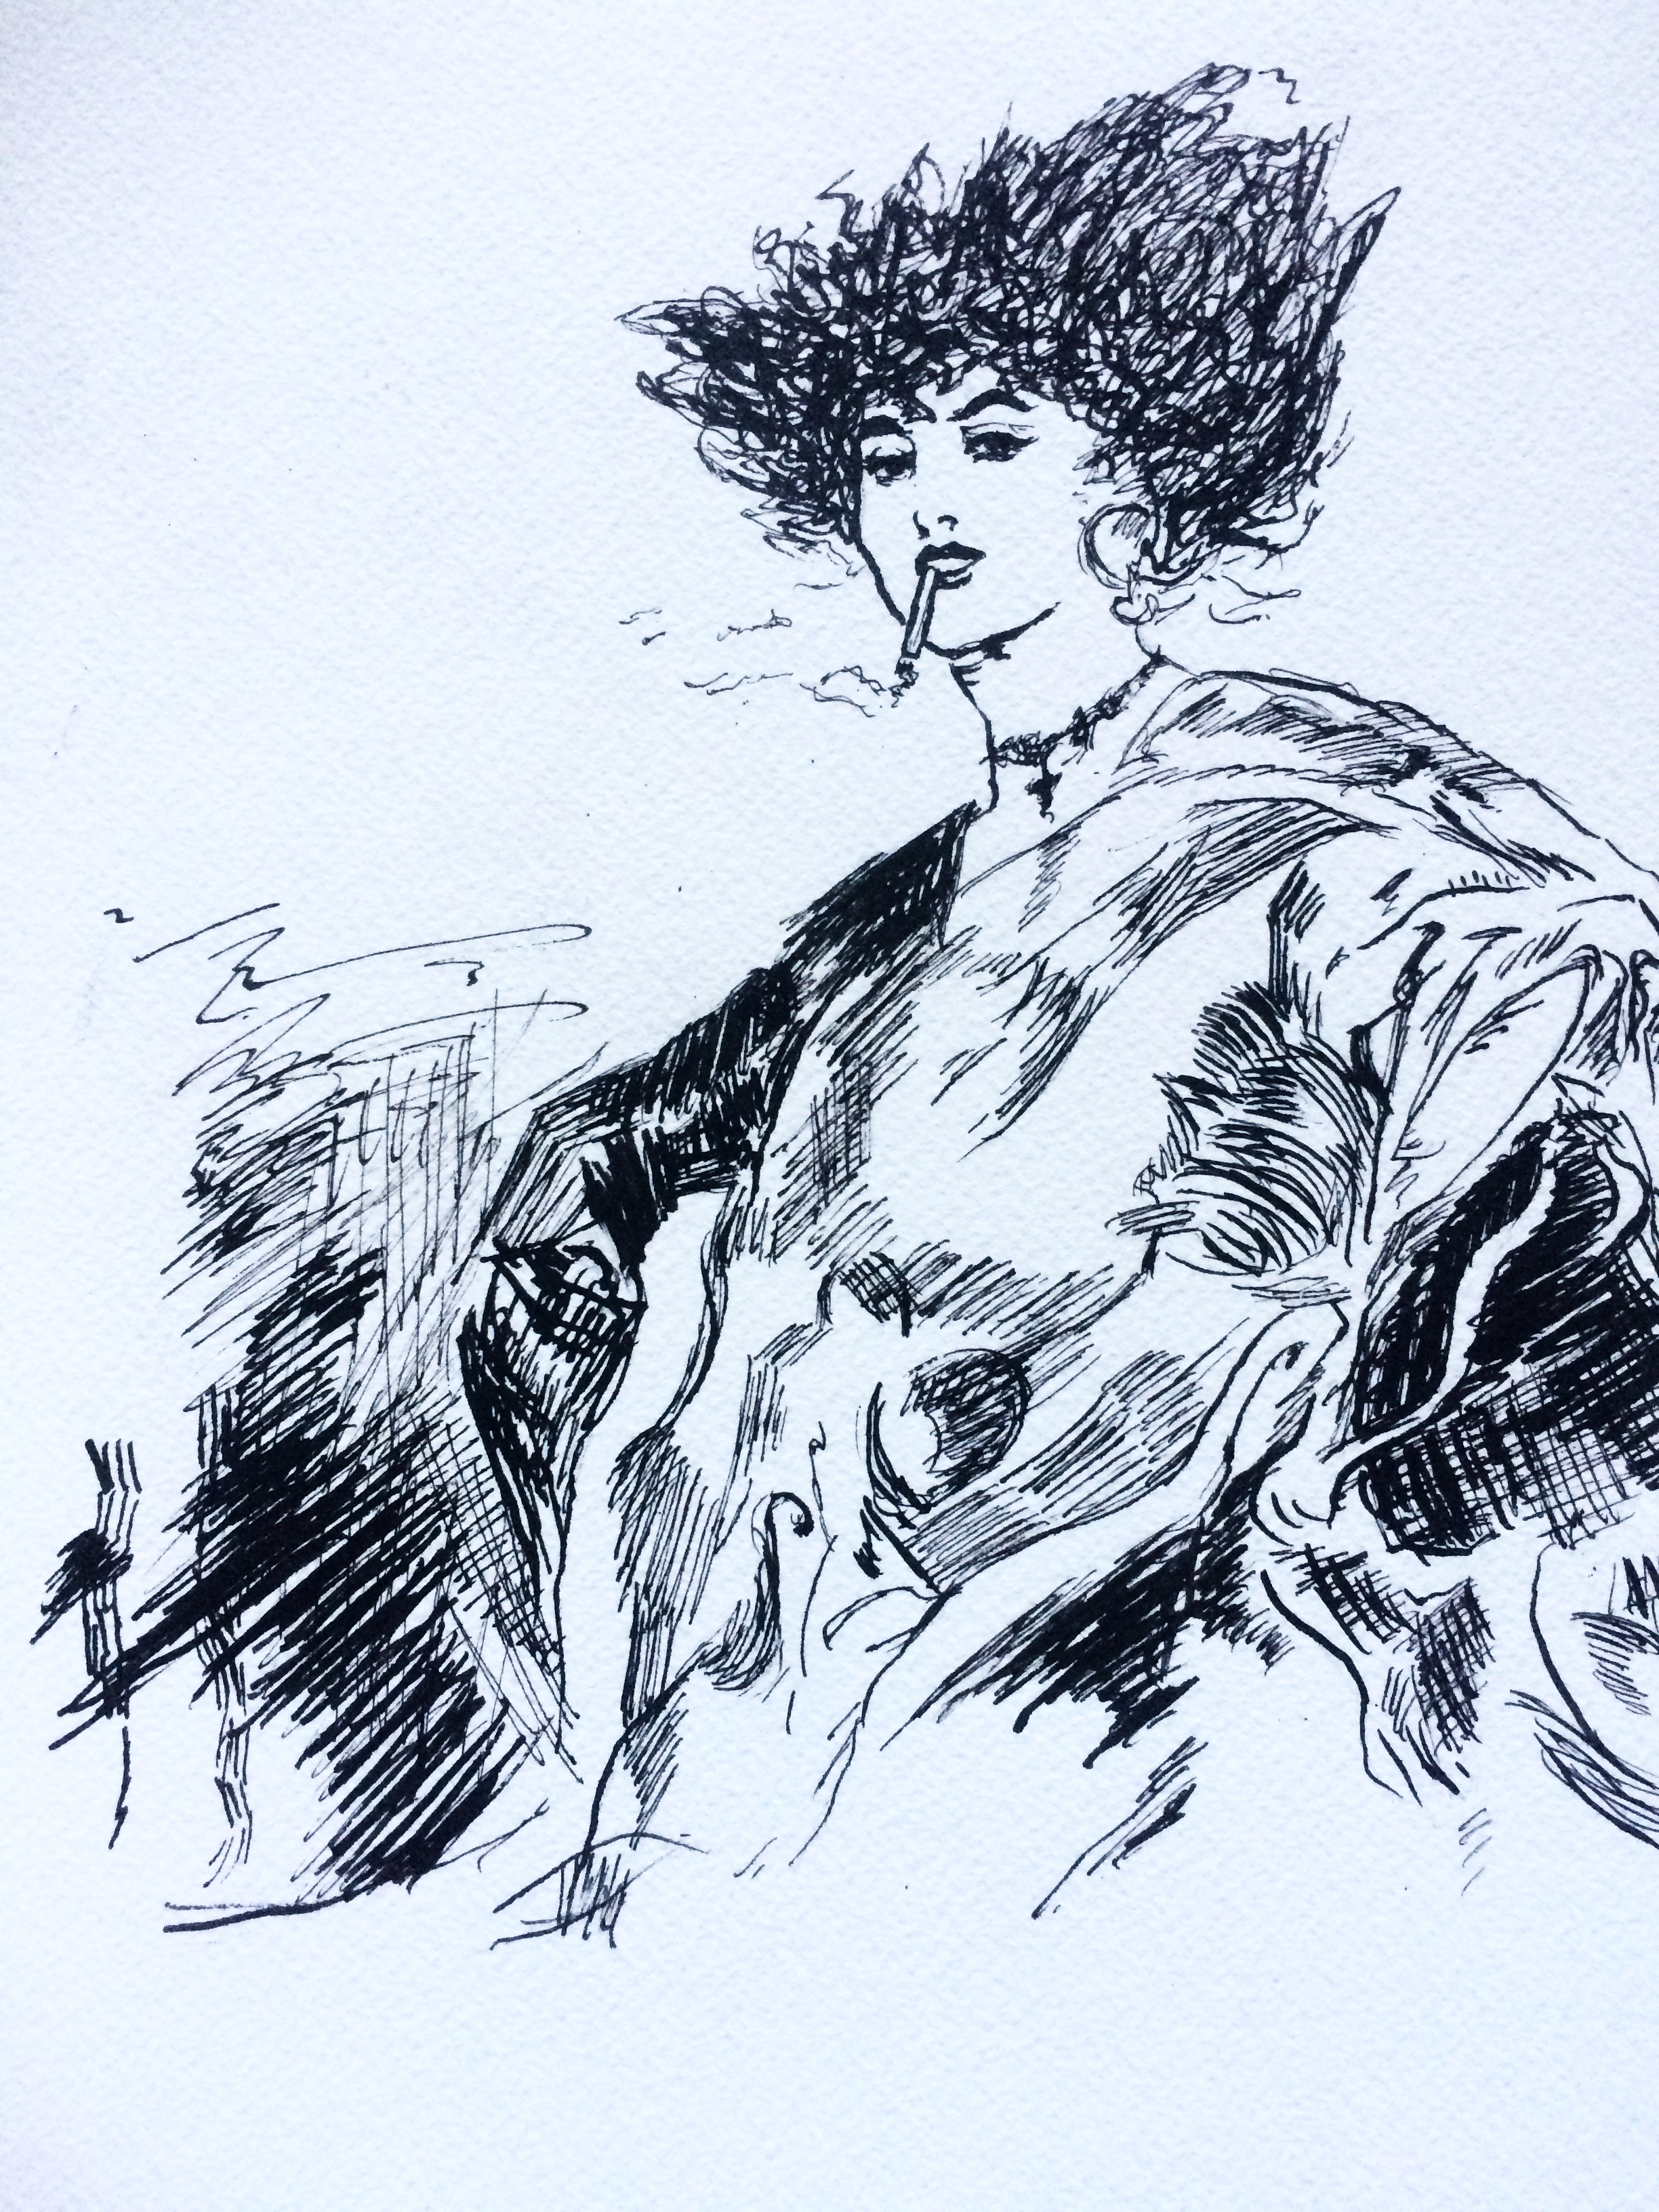 Copy work Pen and ink